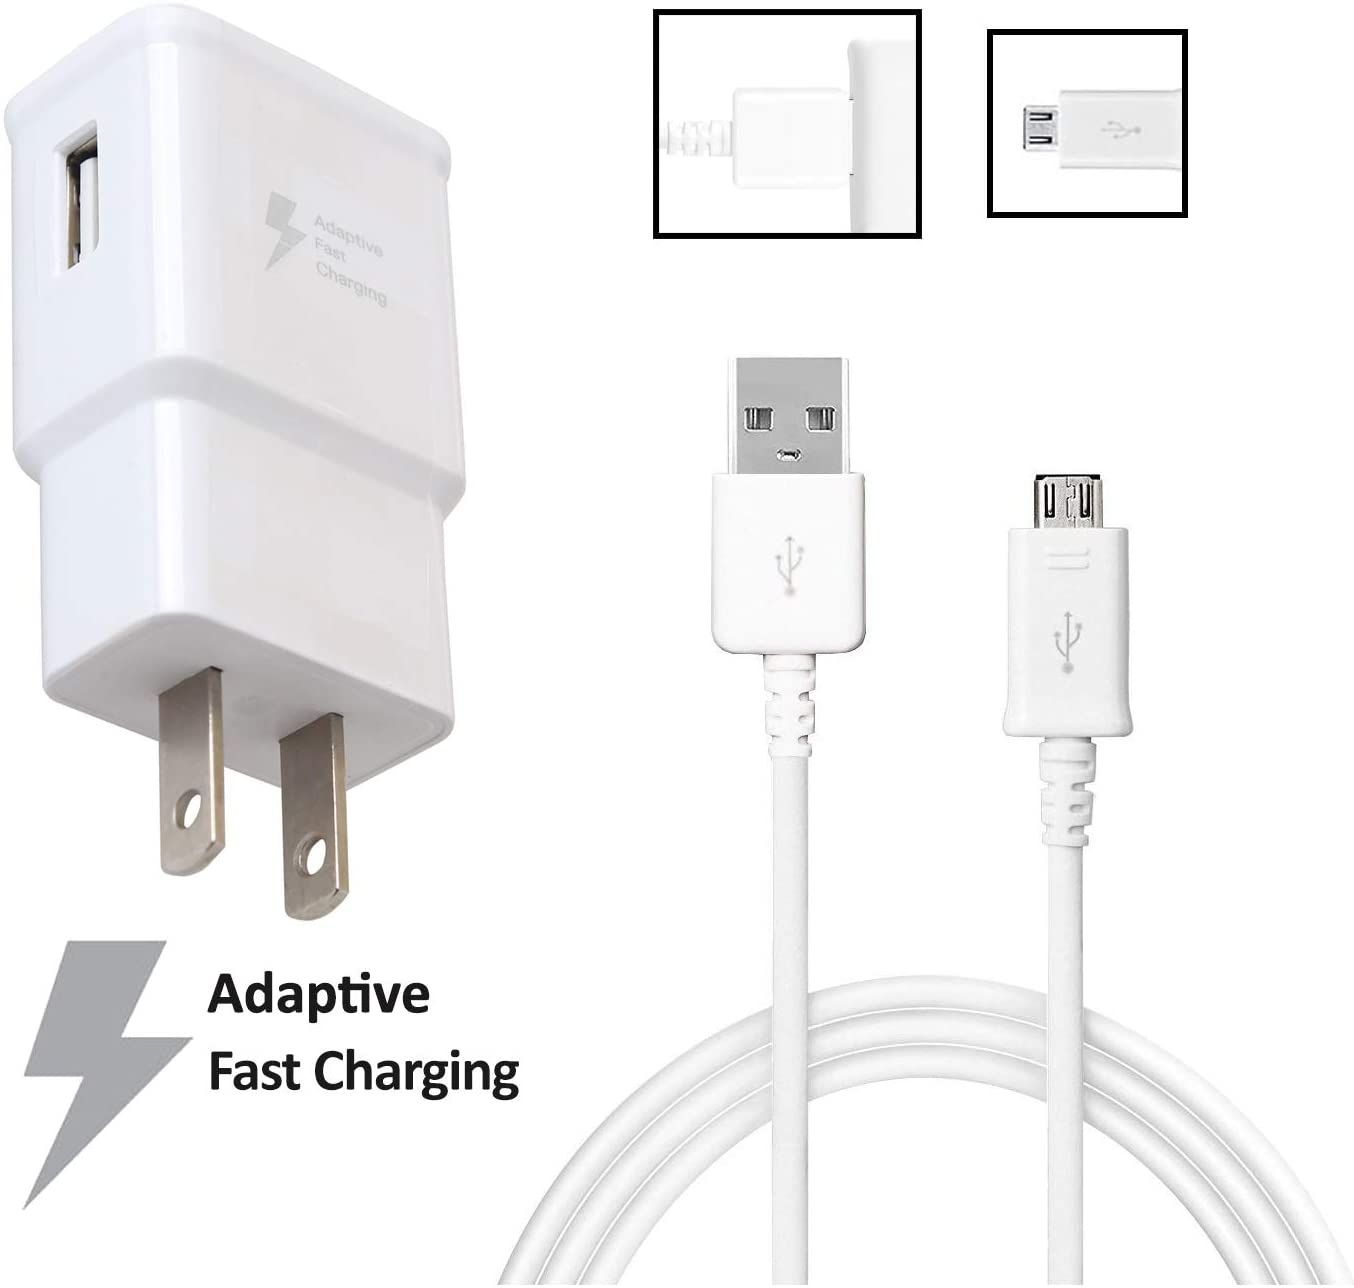 OEM Adaptive Fast Charger Compatible with HTC Desire 630 Cell Phones [Wall Charger + 5 FT Micro USB Cable] - AFC uses Dual voltages for up to 50% Faster Charging!- White